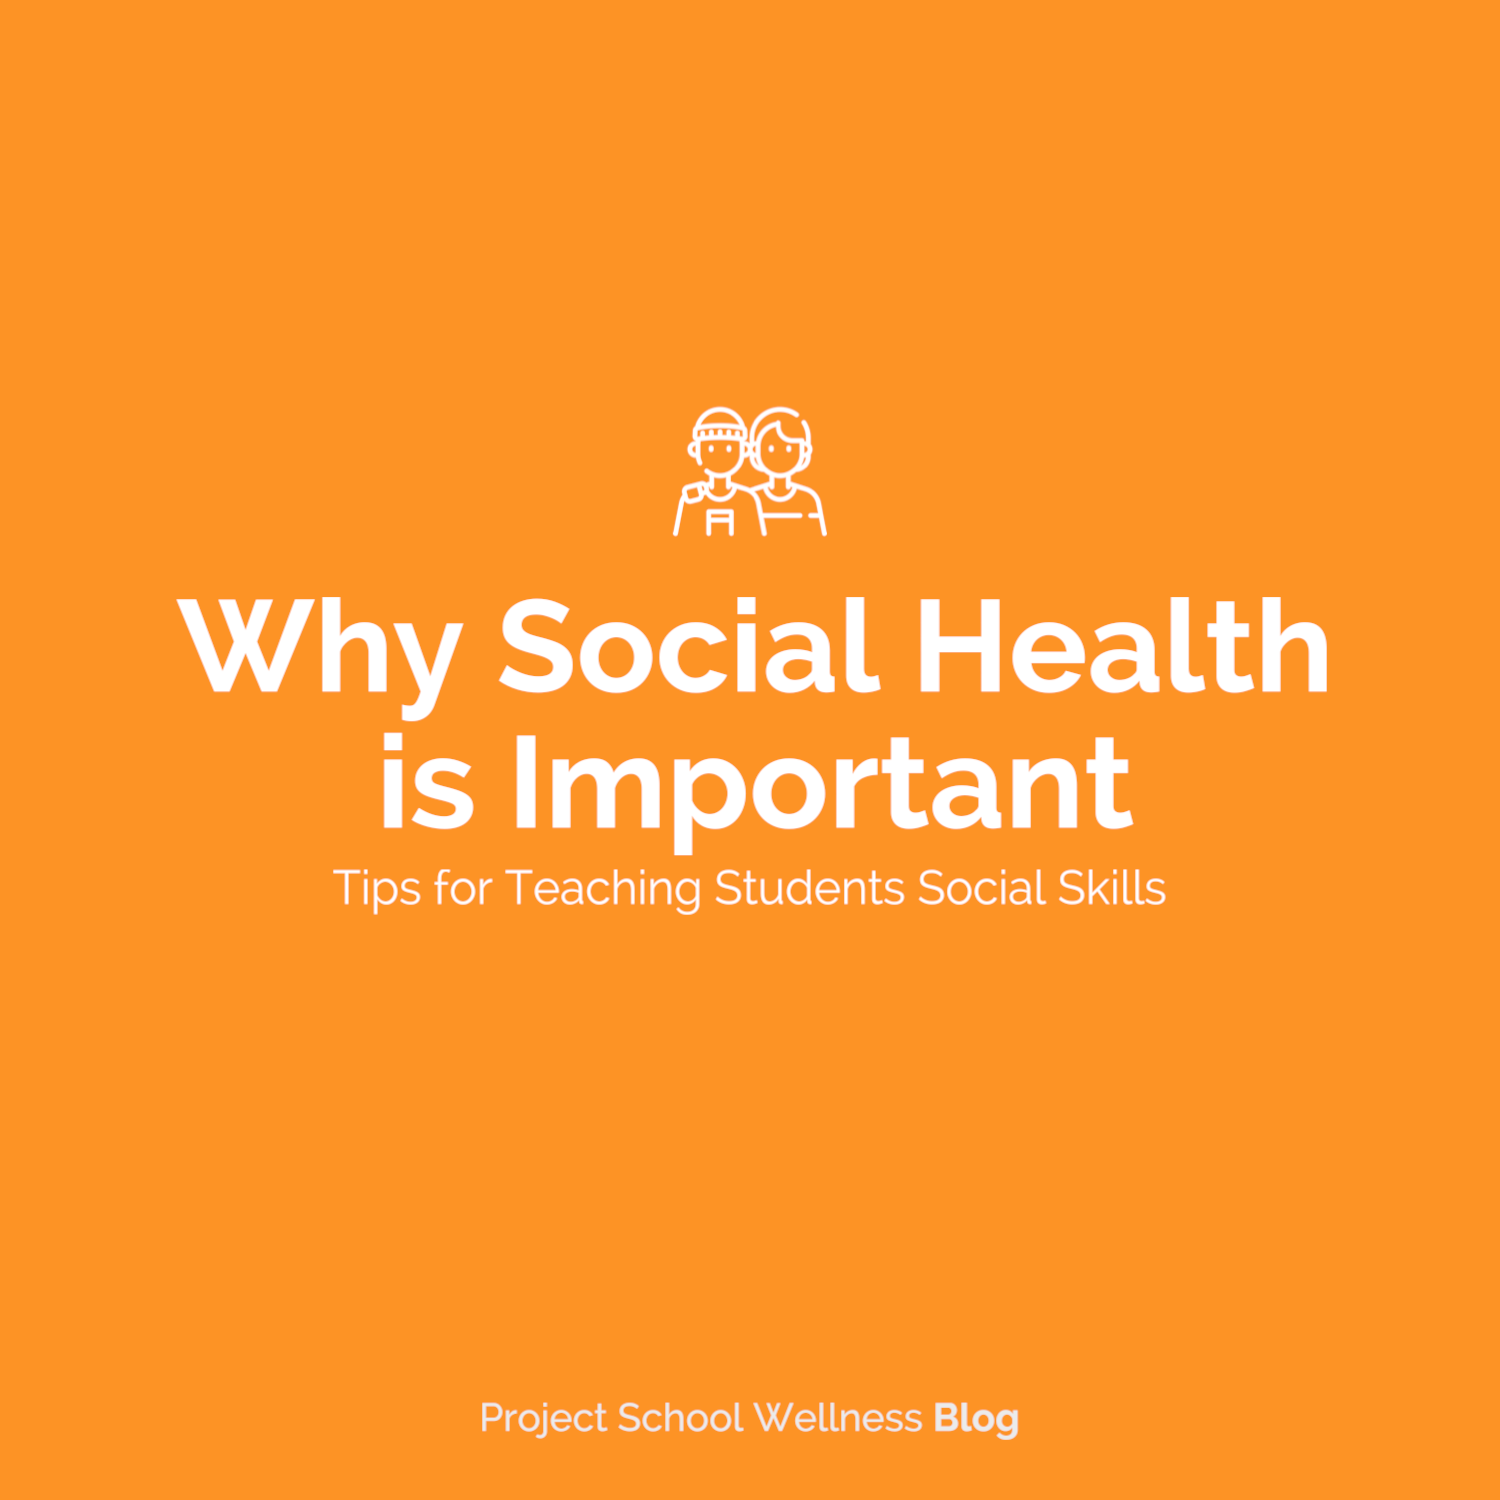 PSW Blog - Why Social Health is Important